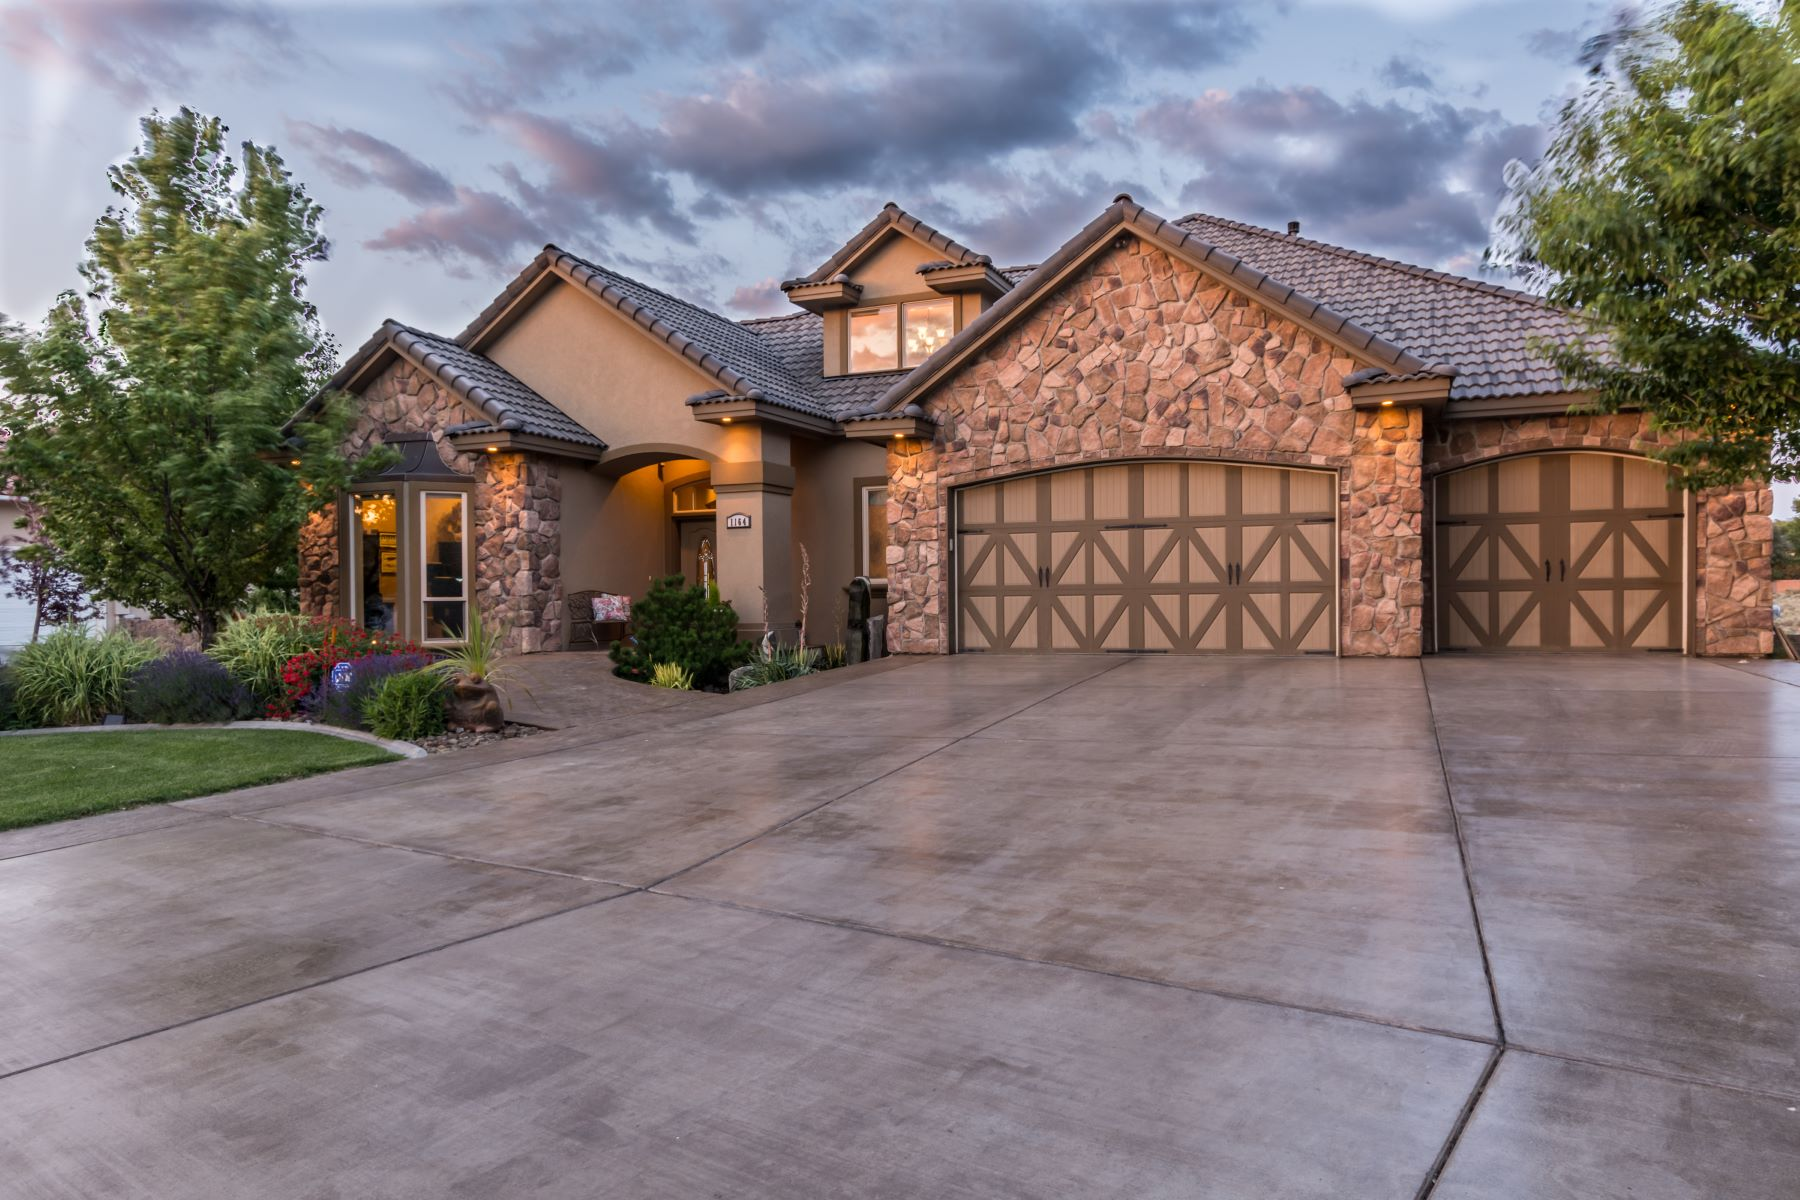 Single Family Home for Sale at Country Estate on .89 acres 1164 Pinto Loop Richland, Washington 99352 United States